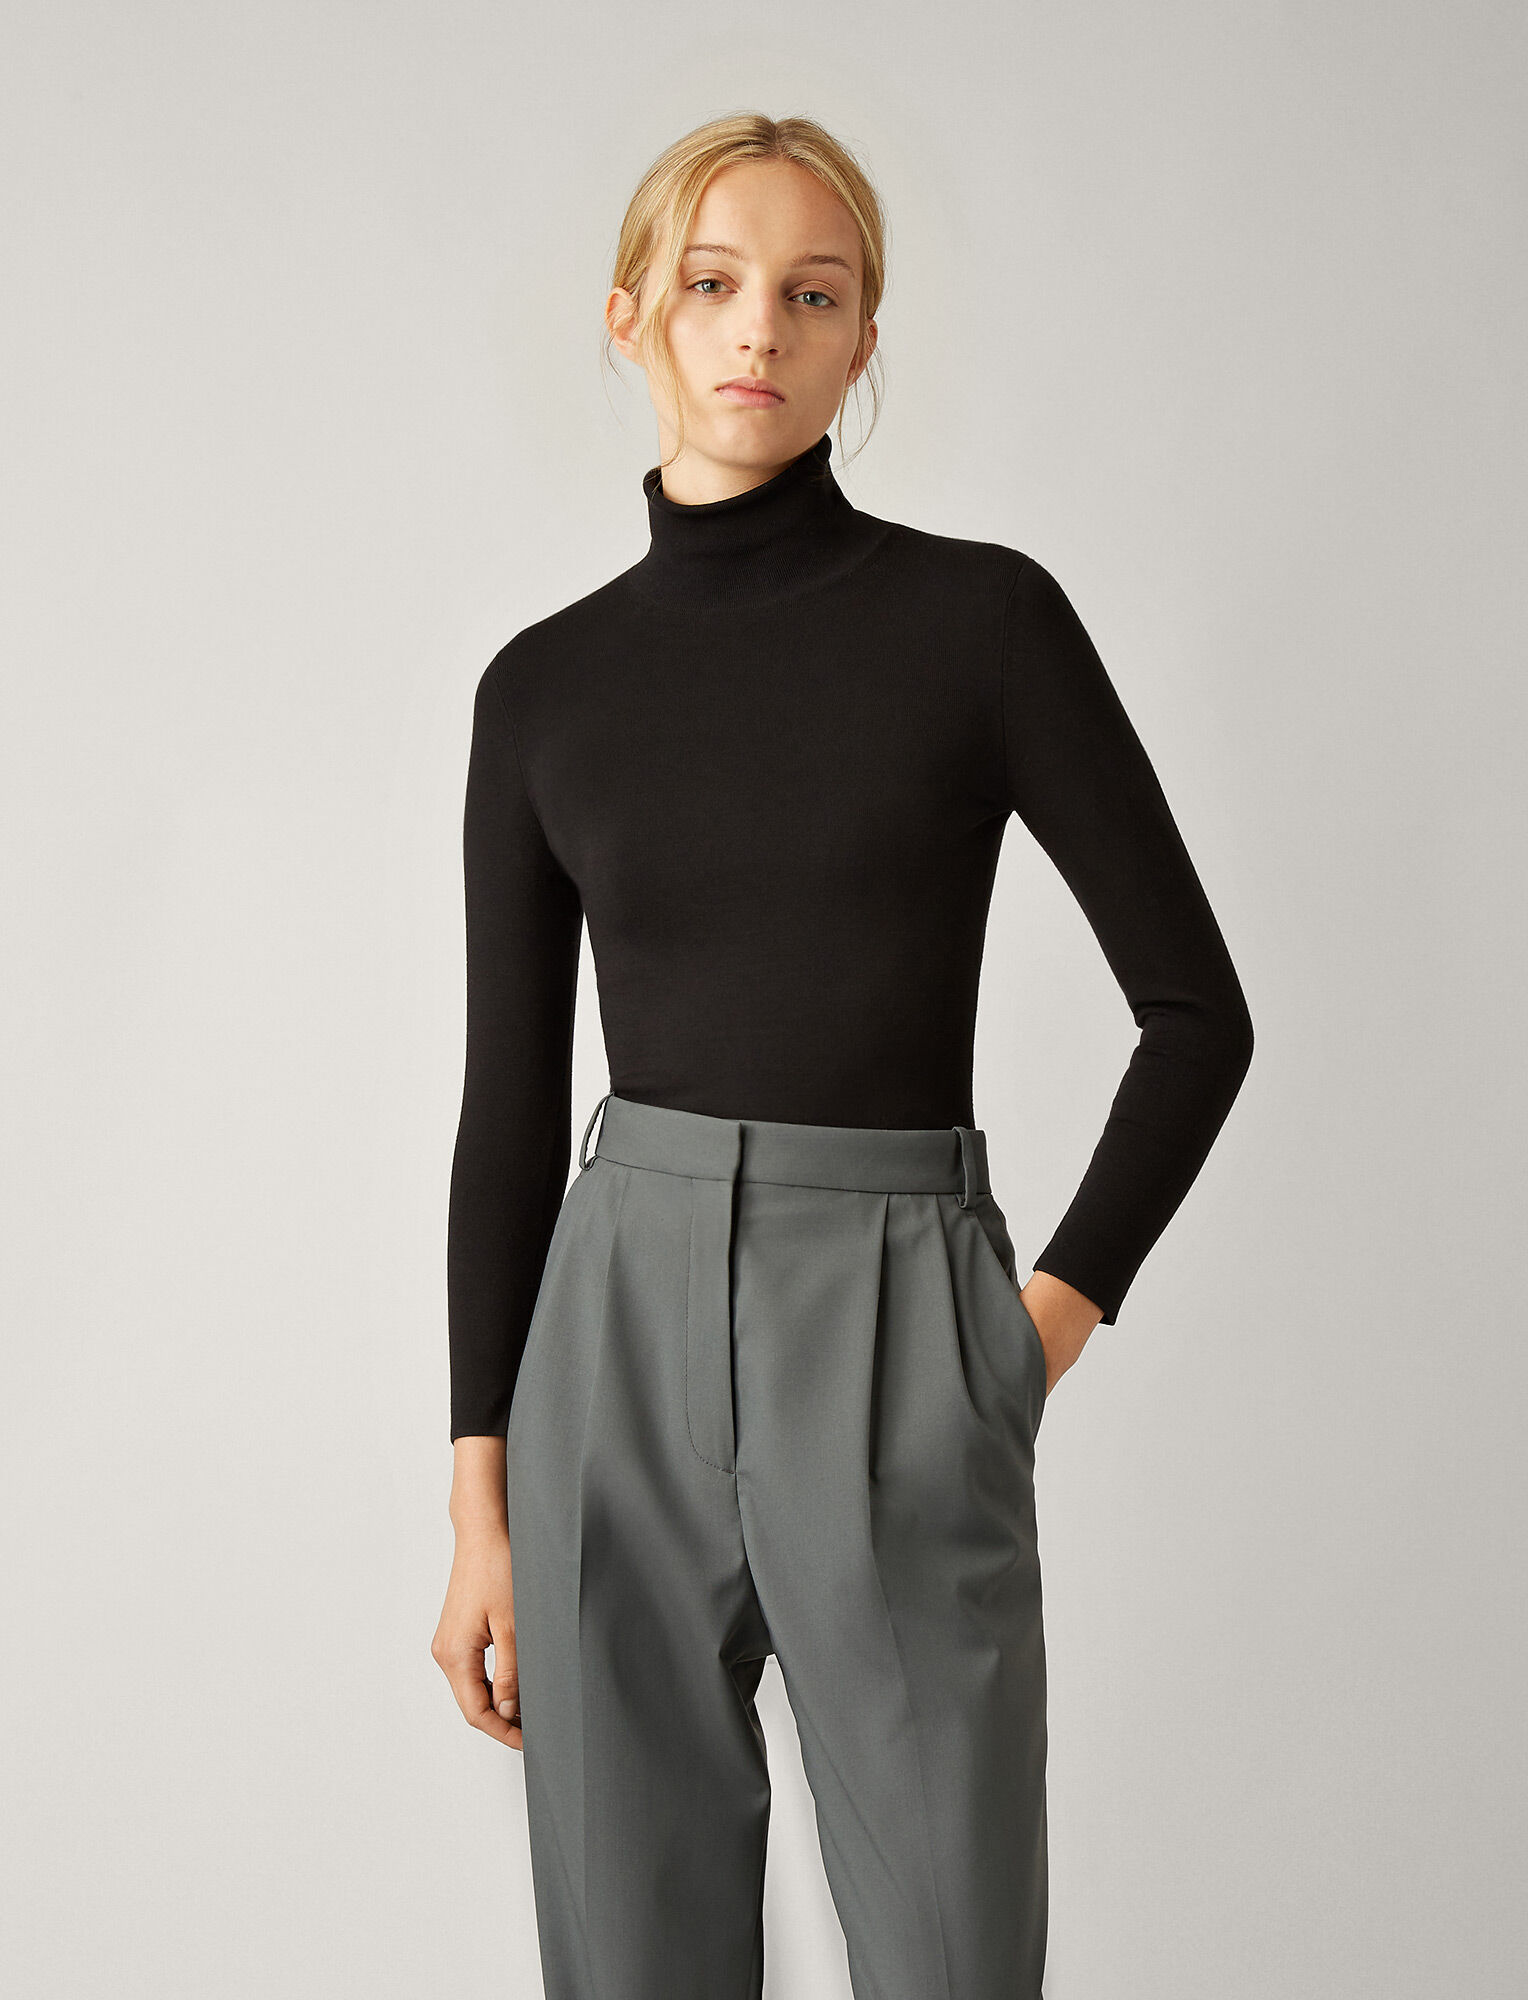 Joseph, Turtle Neck Silk Stretch Knit, in BLACK